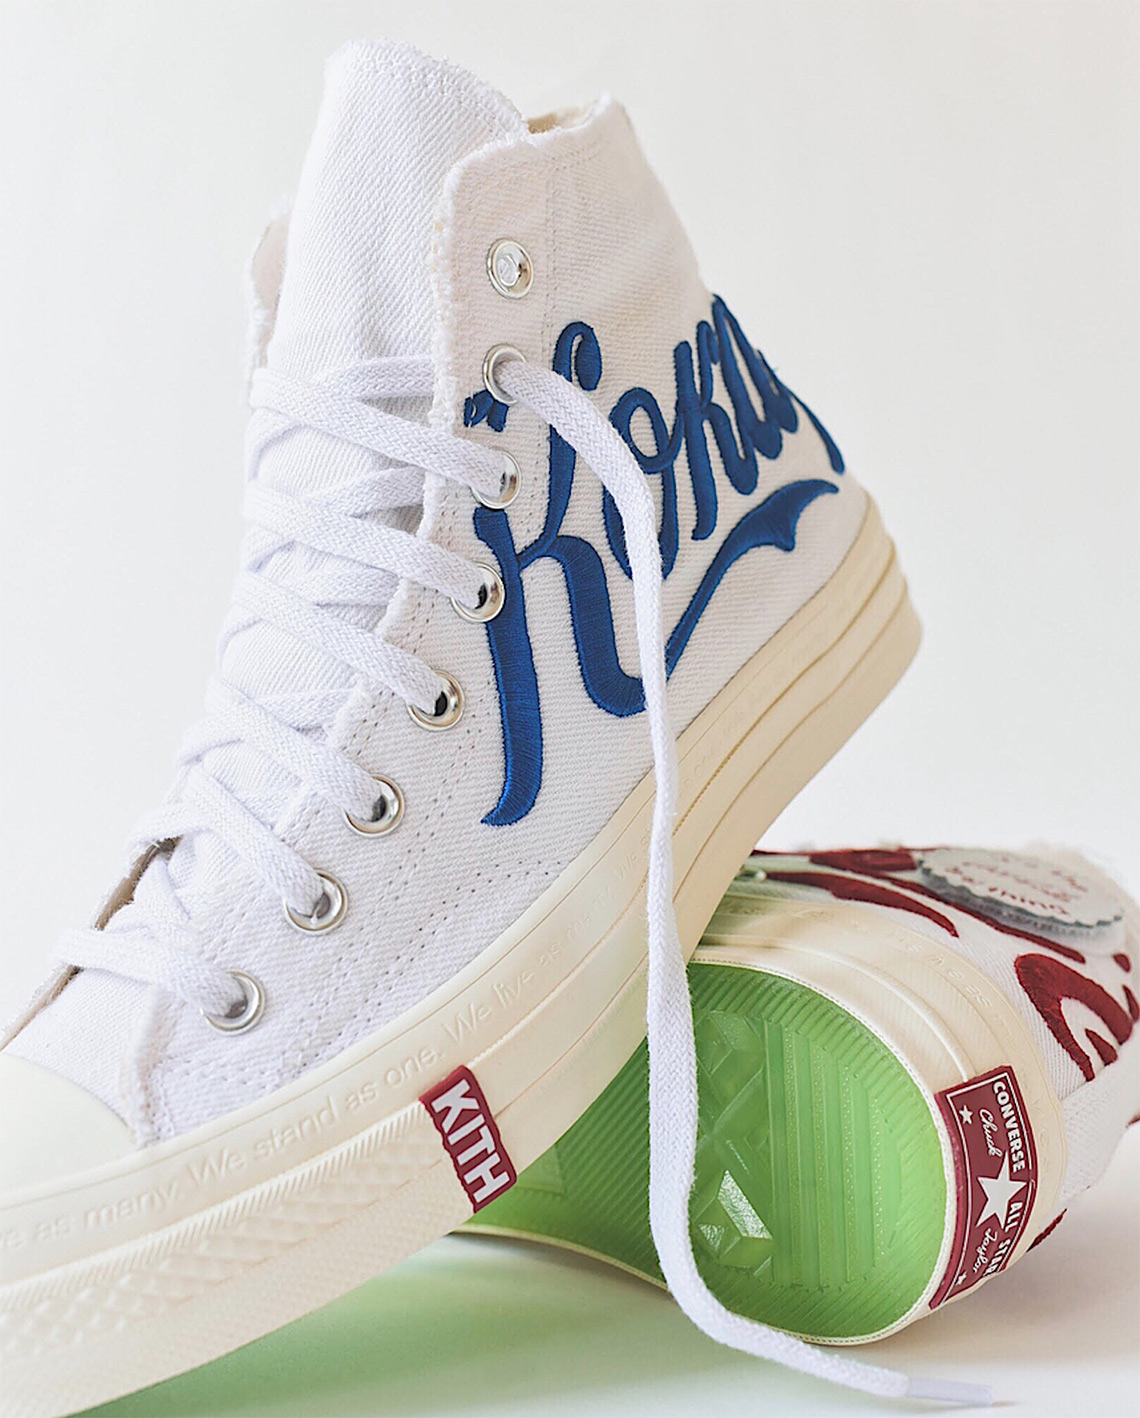 7cf8b9538c4 KITH x Coca Cola x Converse Chuck Taylor 1970s. Release Date  August 18th